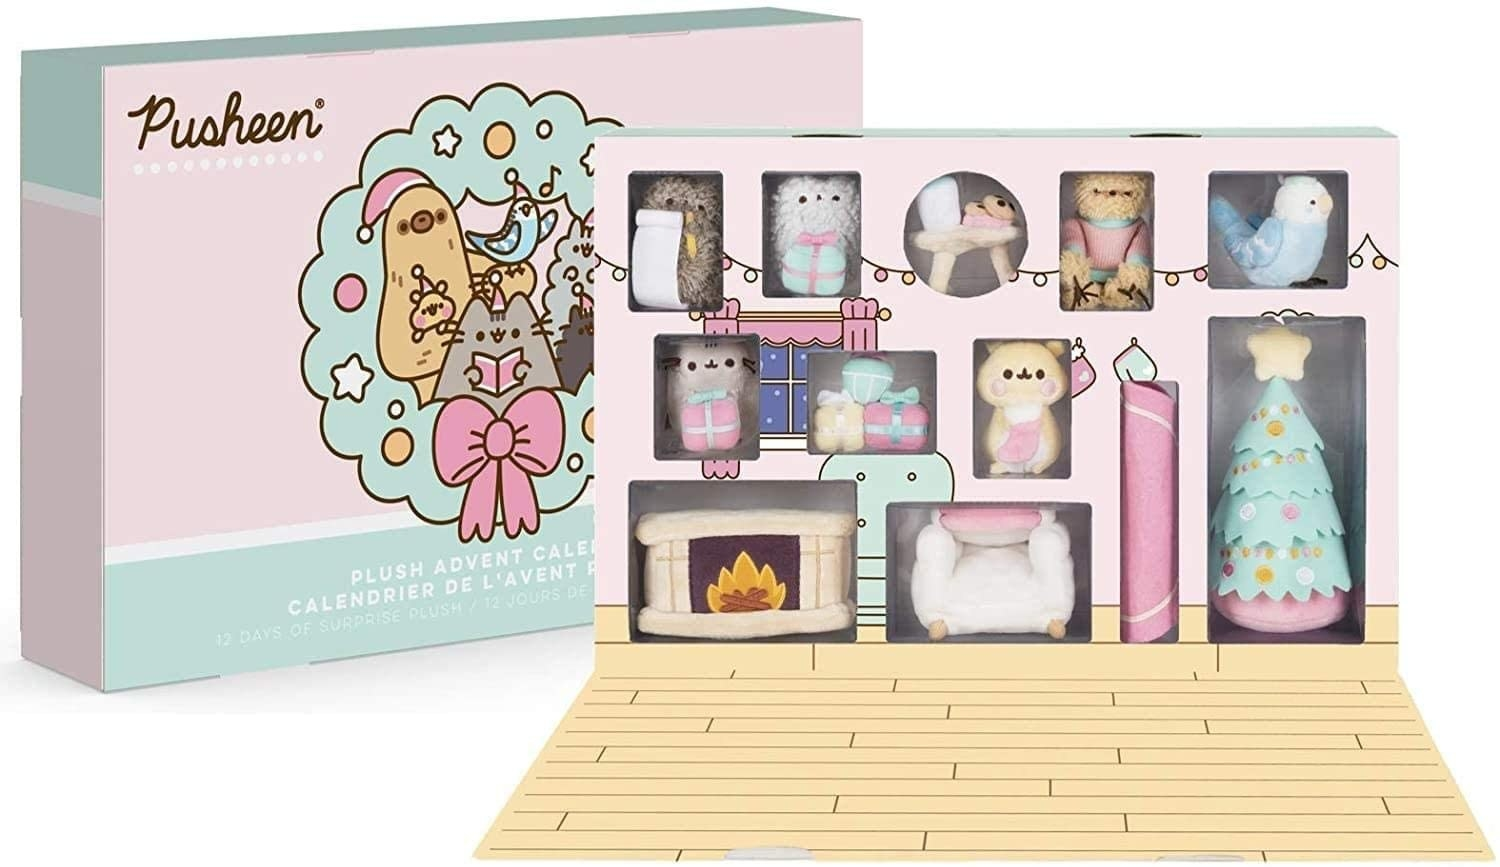 the advent calendar box which is pastel pink and blue and filled with adorable plush figures